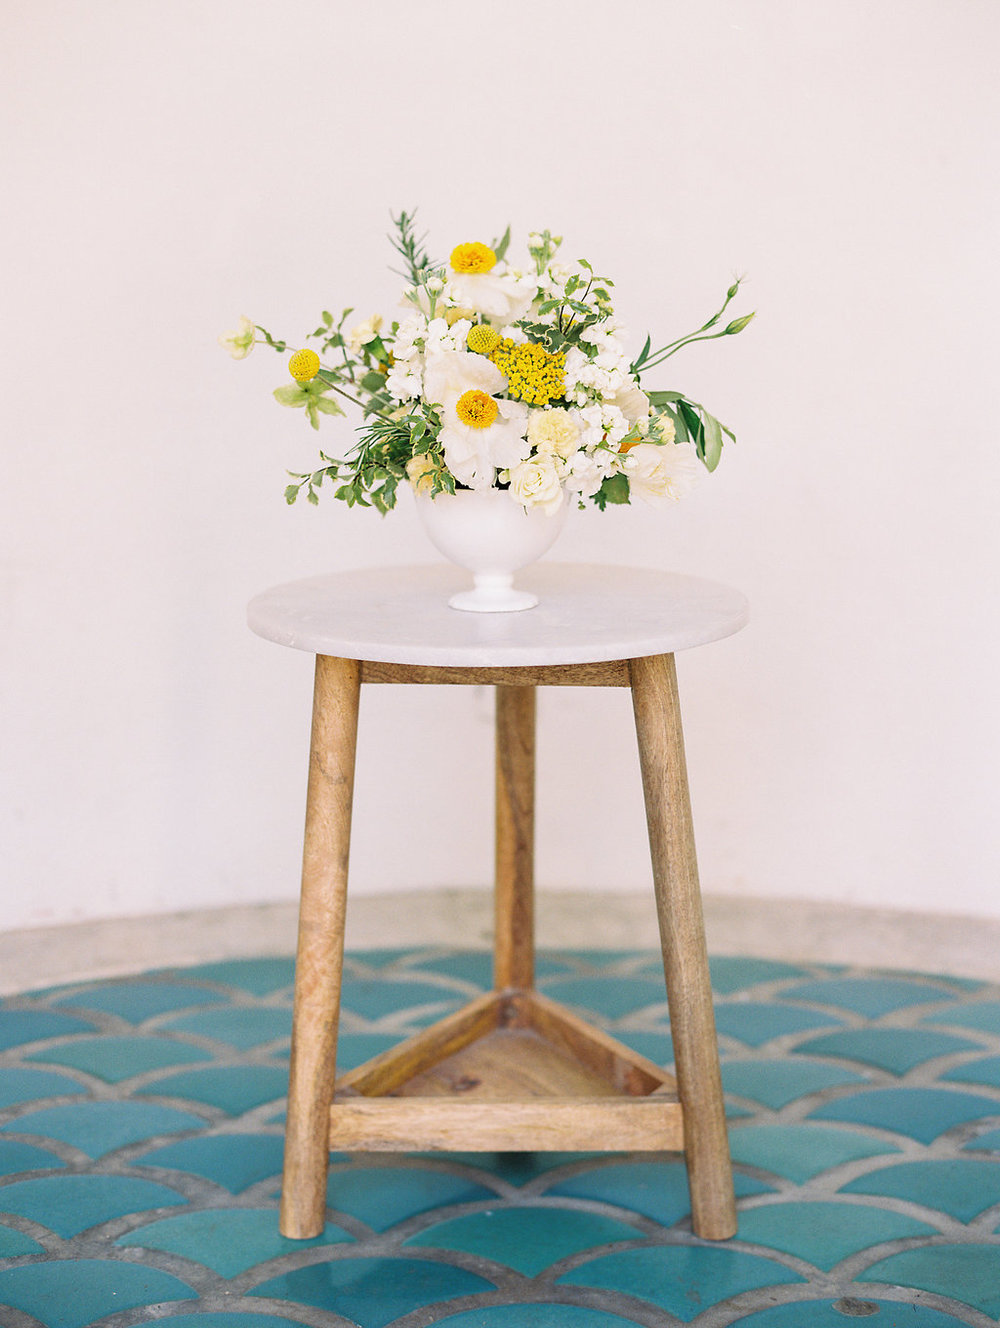 107Hacienda-De-Las-Flores-Styled-Shoot-Indu-Huynh-Photography.jpg